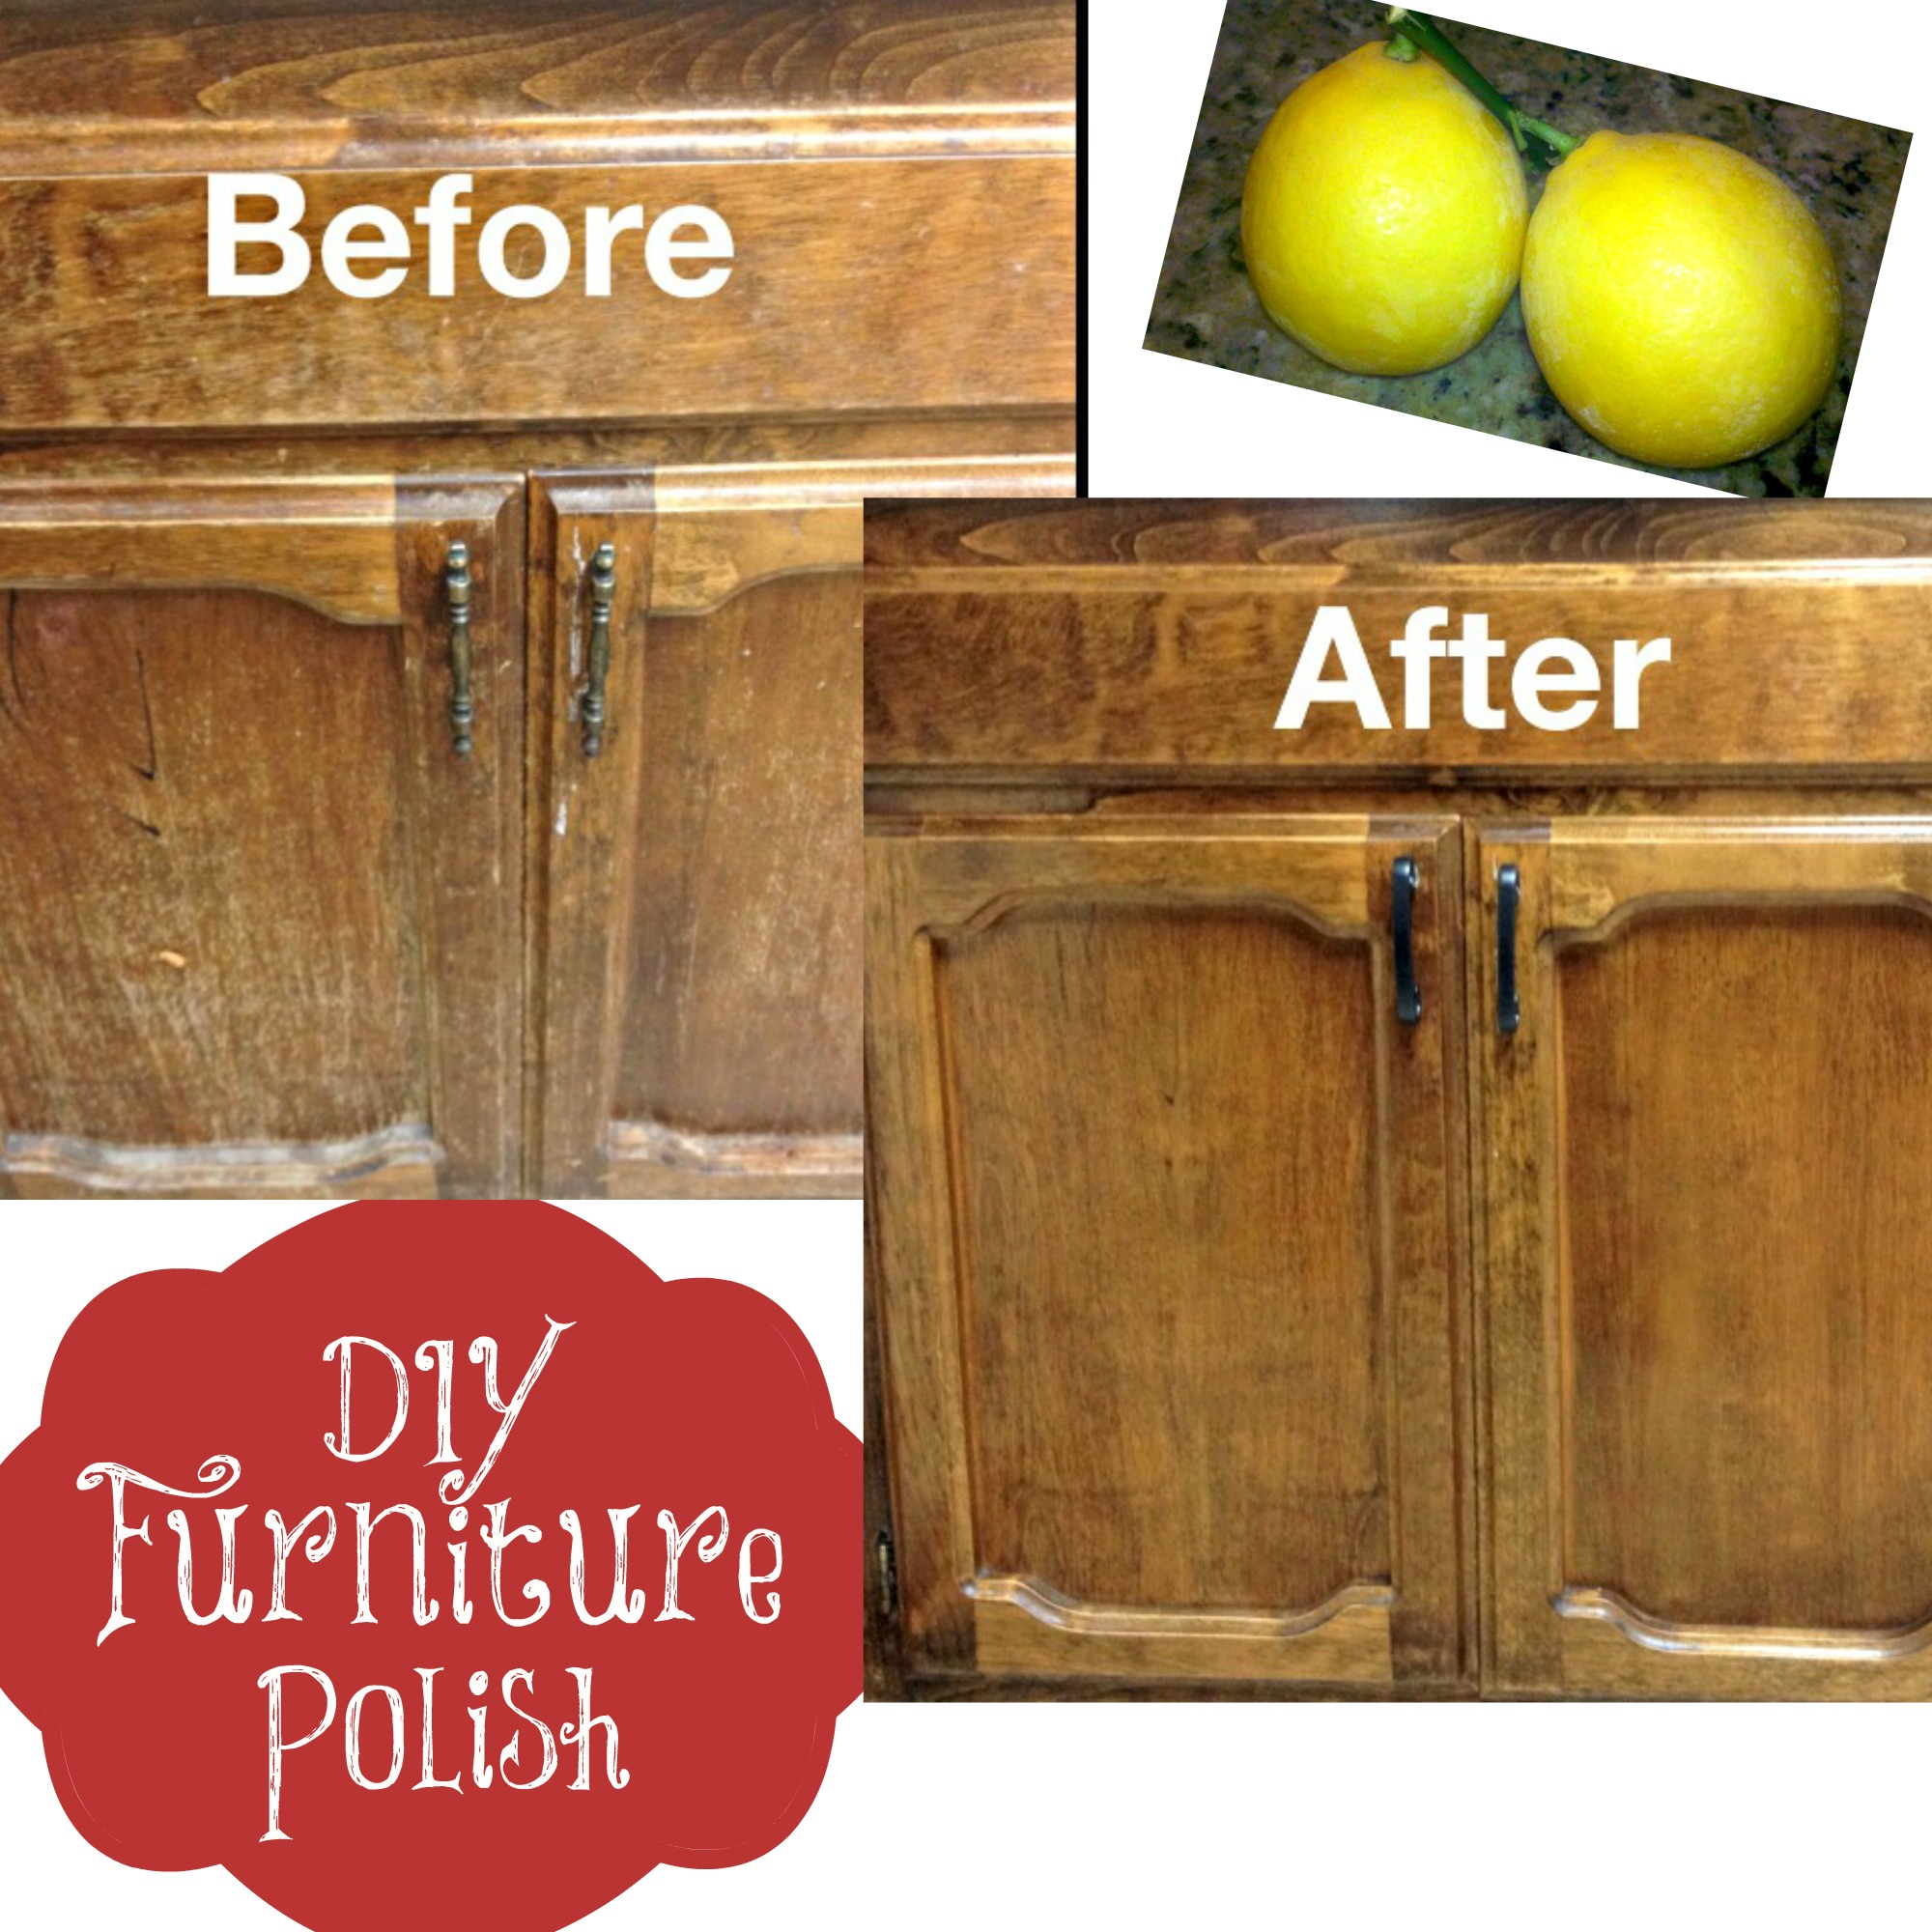 My Growing Diy Guy And Homemade Furniture Polish Recipe Clever Housewife